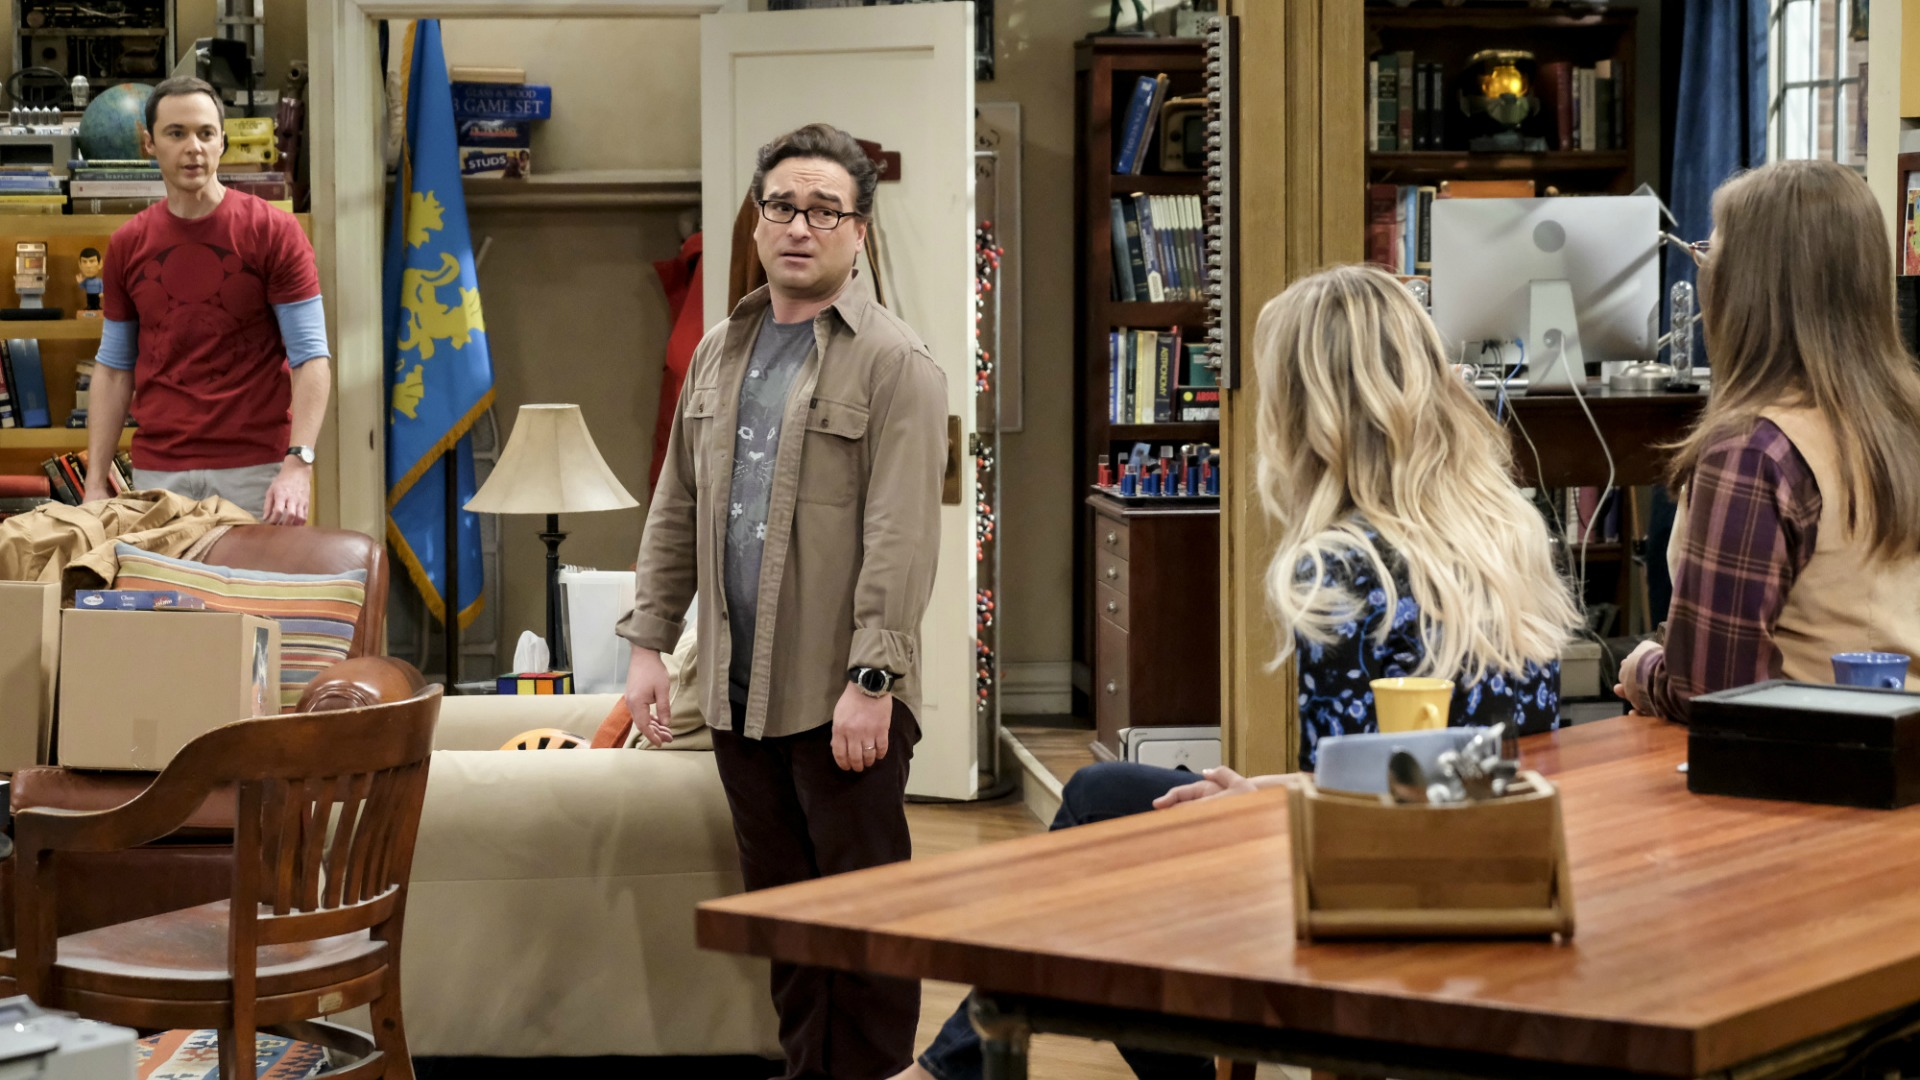 Sheldon, Leonard, Penny, and Amy discuss divvying up their belongings.